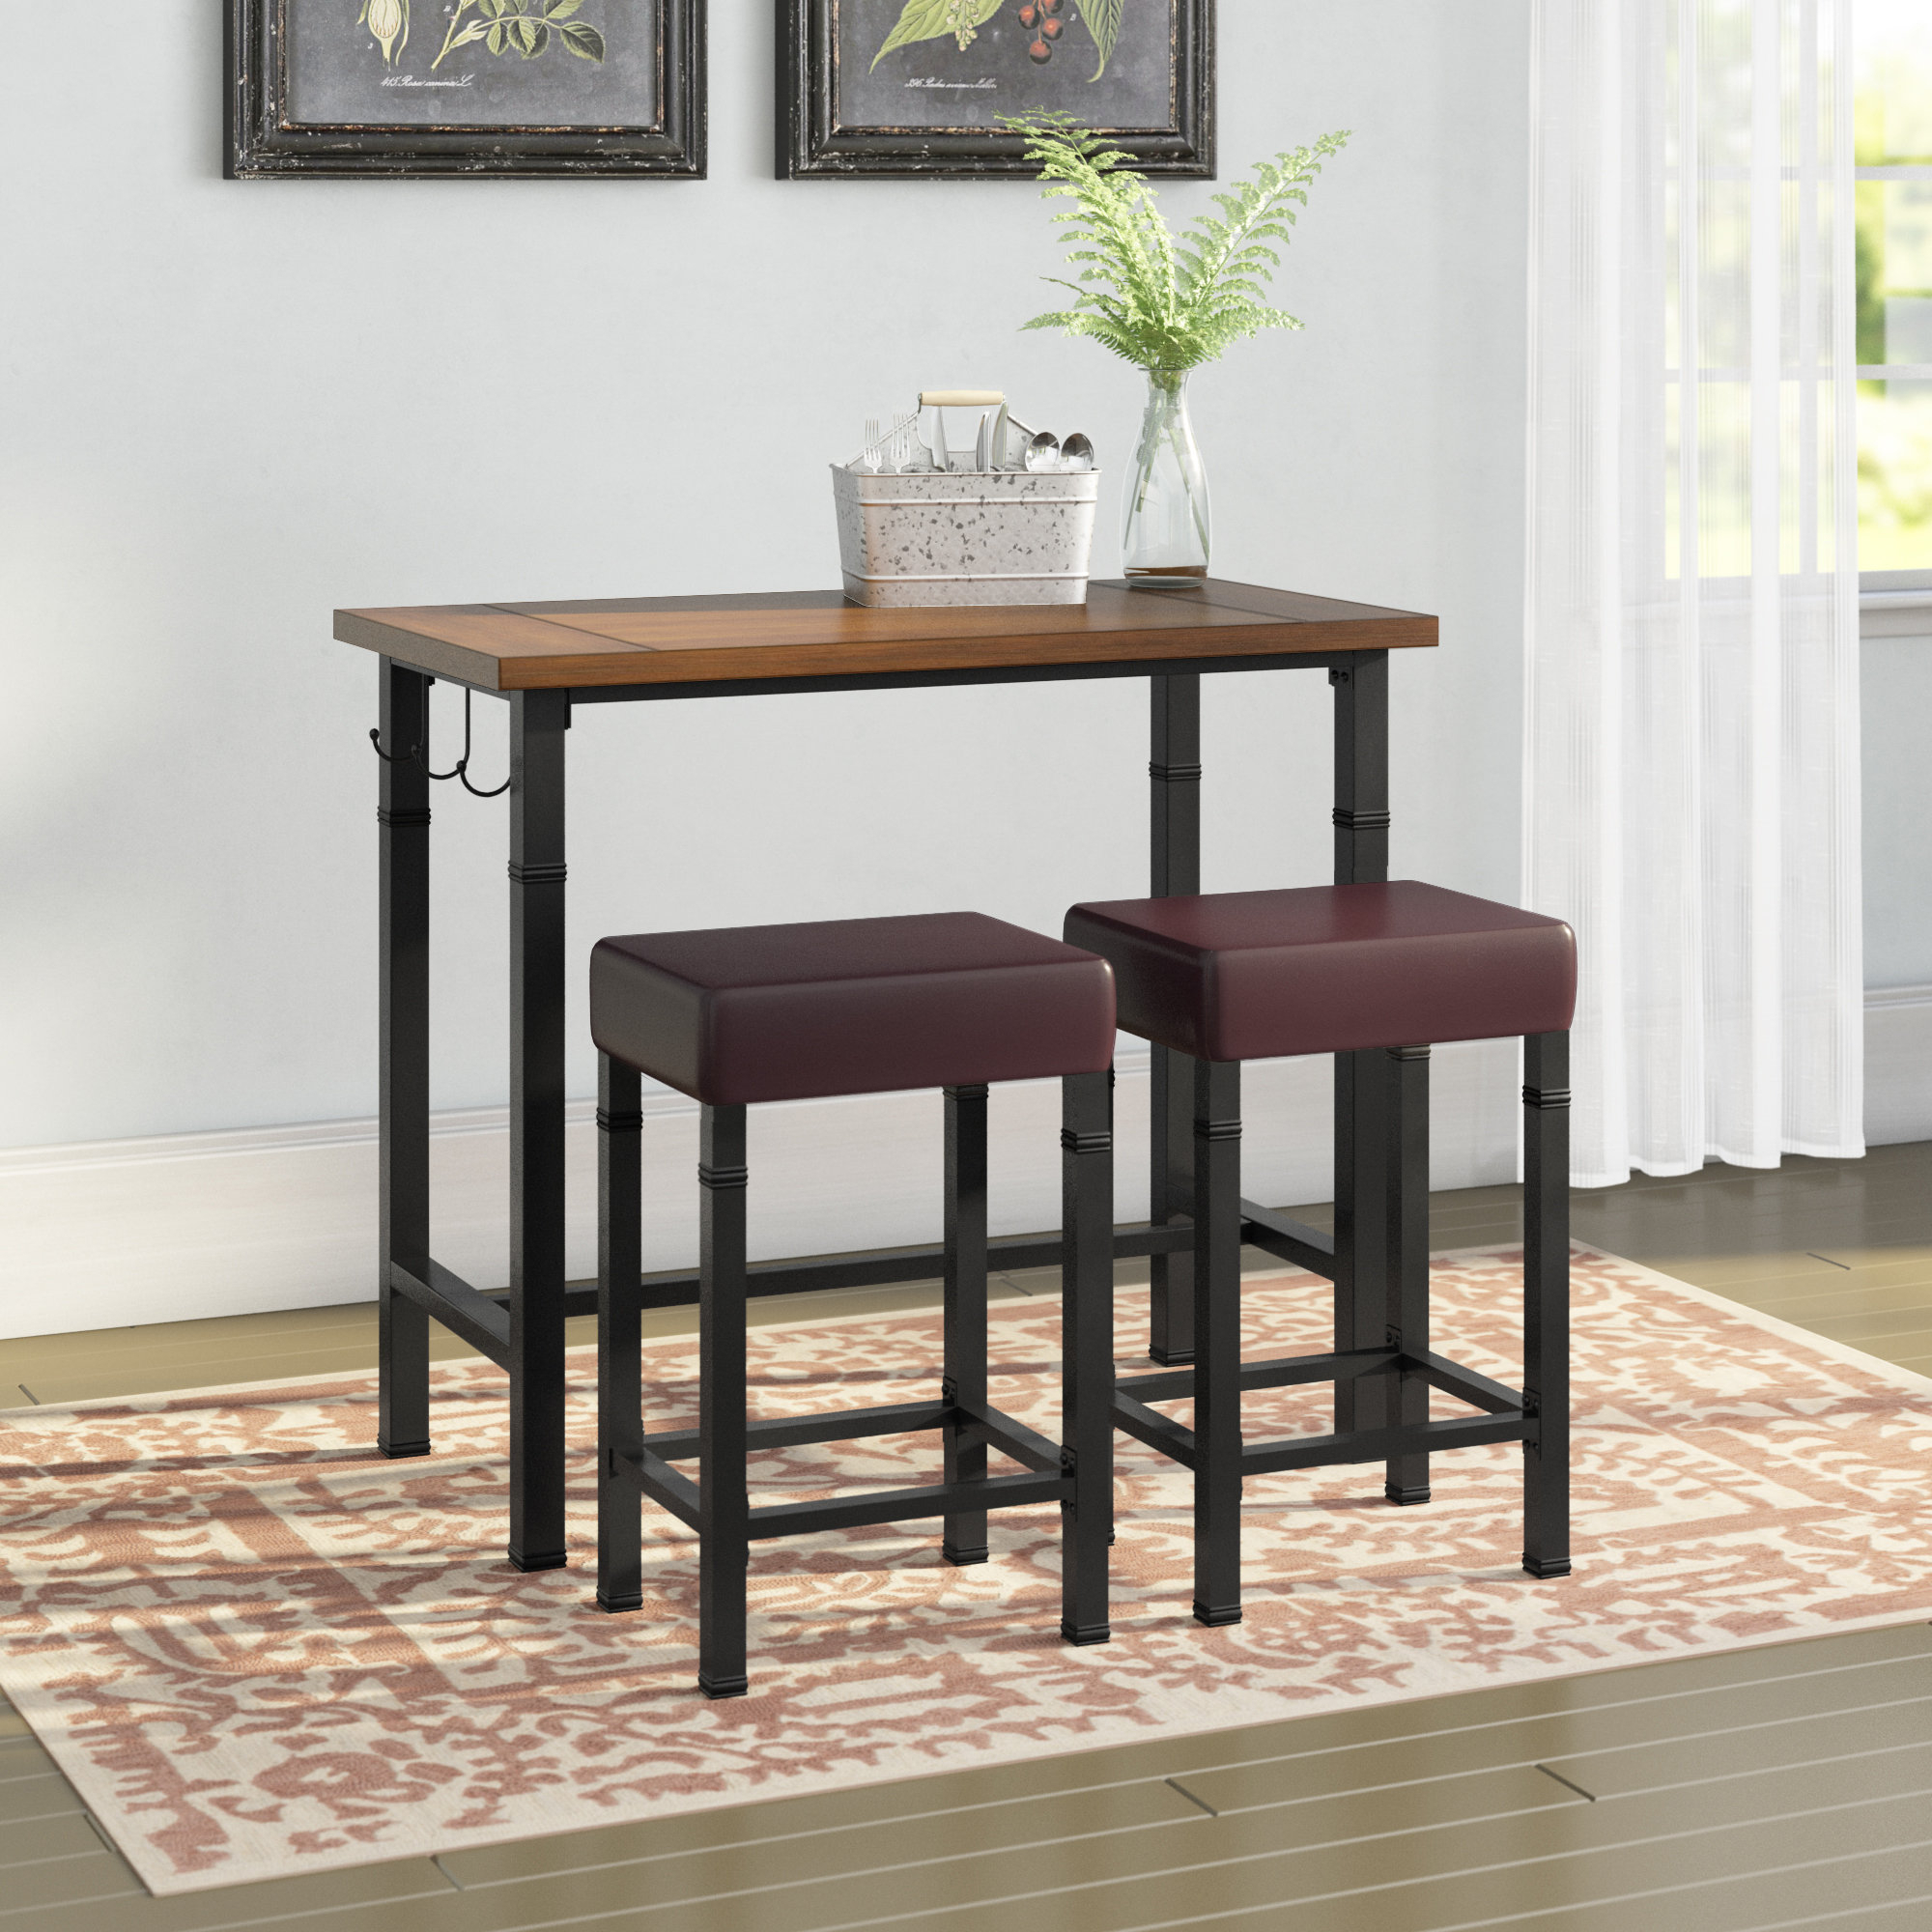 Sevigny 3 Piece Pub Table Set For 2017 Springfield 3 Piece Dining Sets (View 16 of 20)